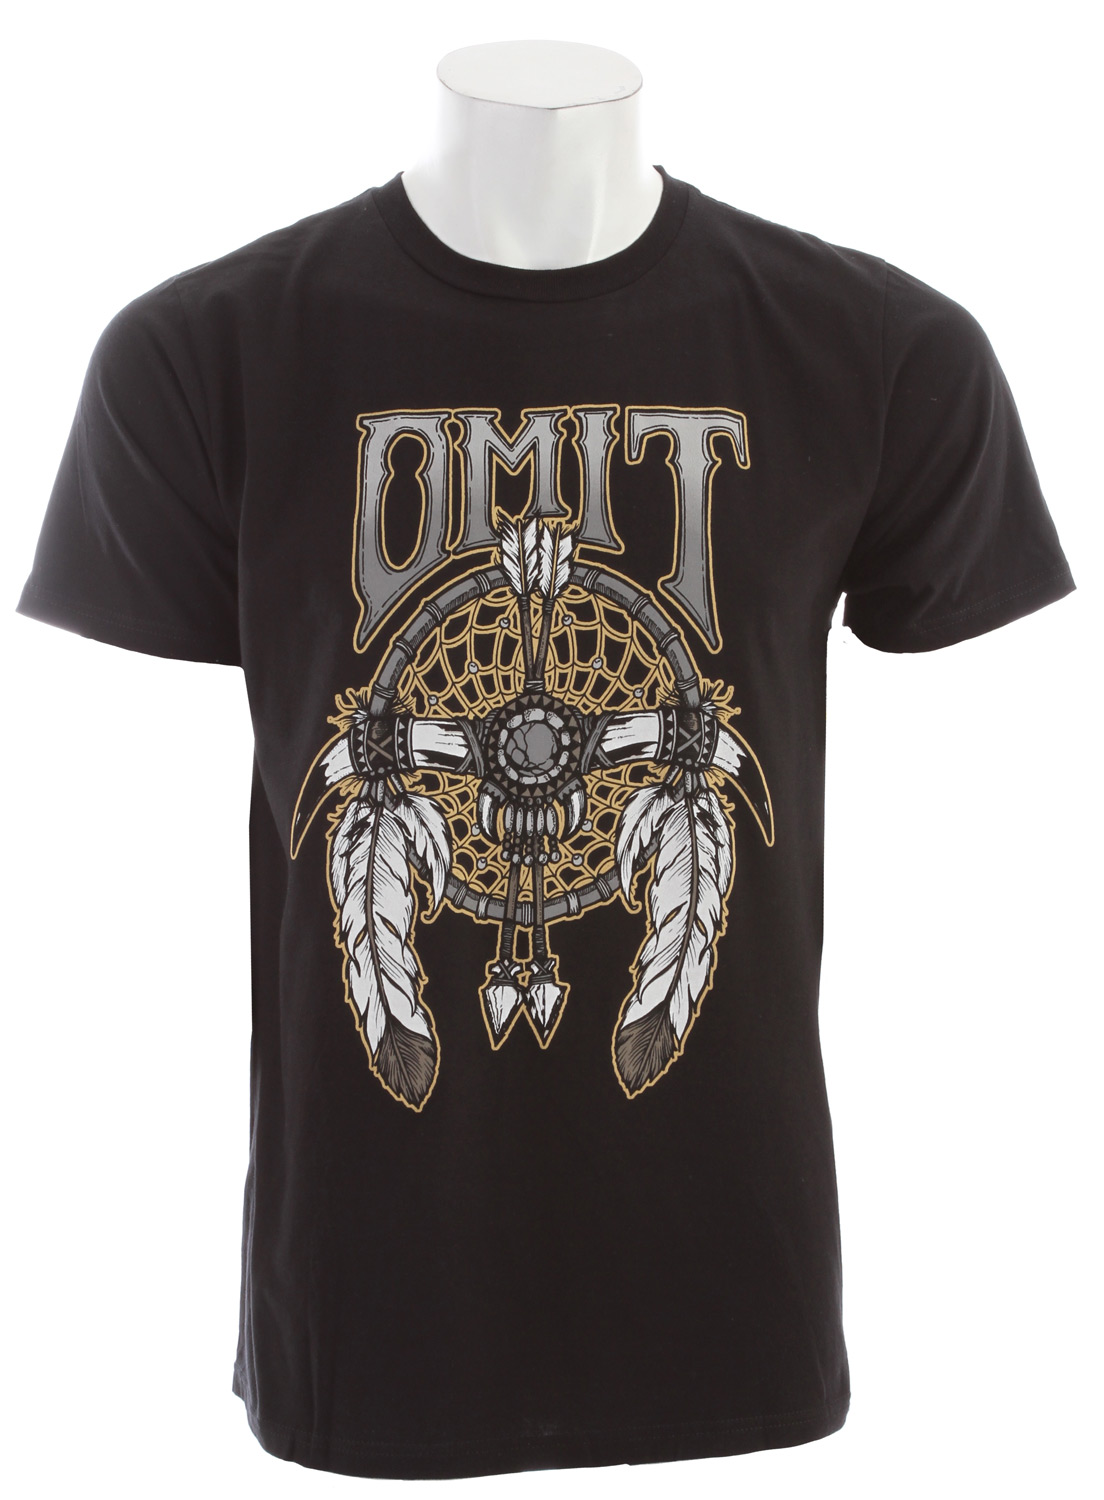 Find your inner soul with the new Omit Catch The Dream Shirt. - $12.95